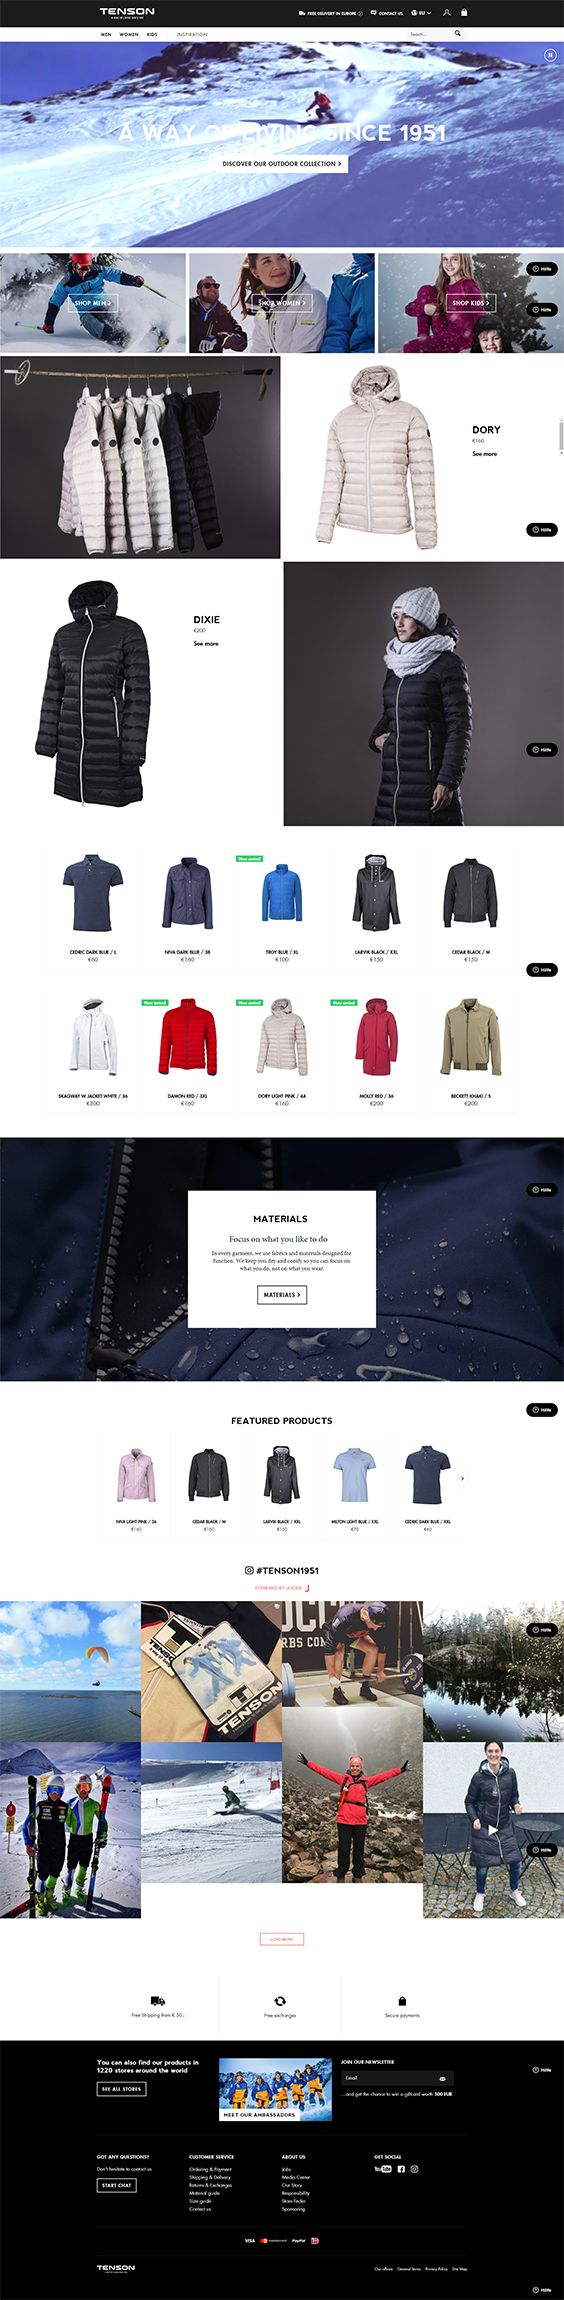 #ShopwareDesign #ShopwareTheme #ShopwareShop #eCommerce #eCommerceSoftware #eCommerceplatform #Onlineshop #Outdoor #Skiing #mountainendurancesports #ShopwareNetherlands